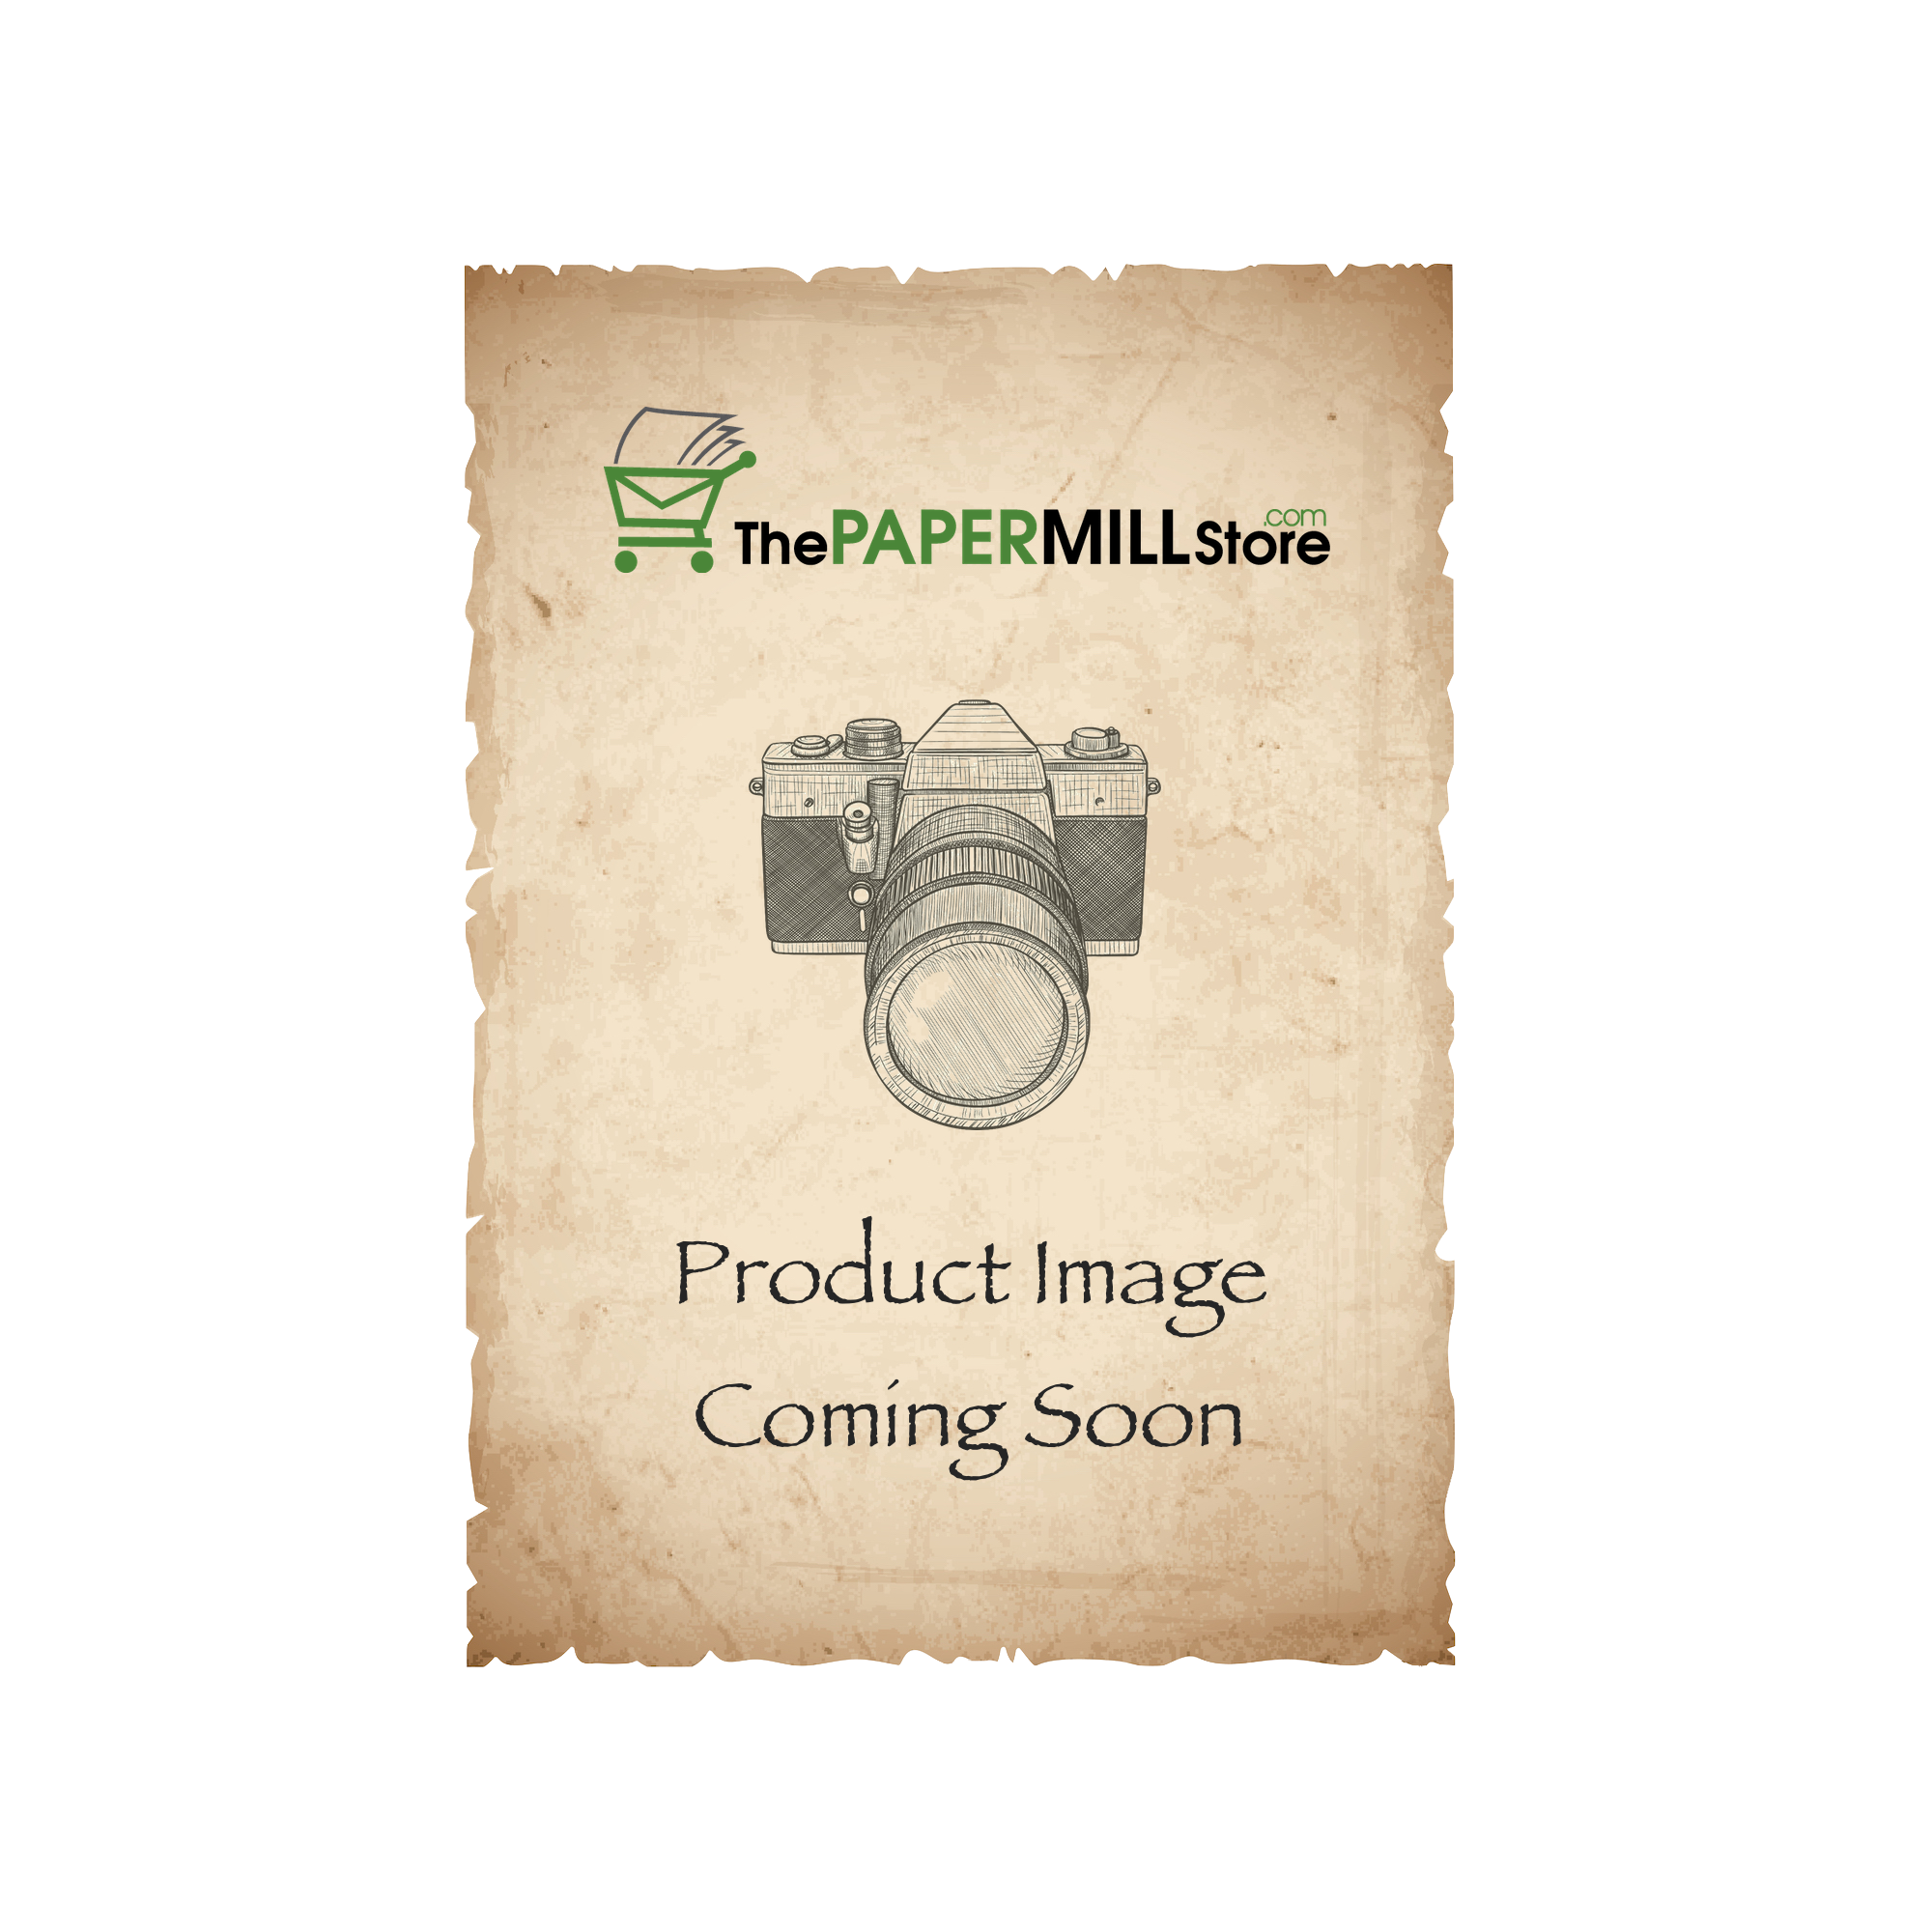 Loop Inxwell i-Tone Eco White Card Stock - 19 x 13 in 80 lb Cover Vellum  100% Recycled 500 per Carton